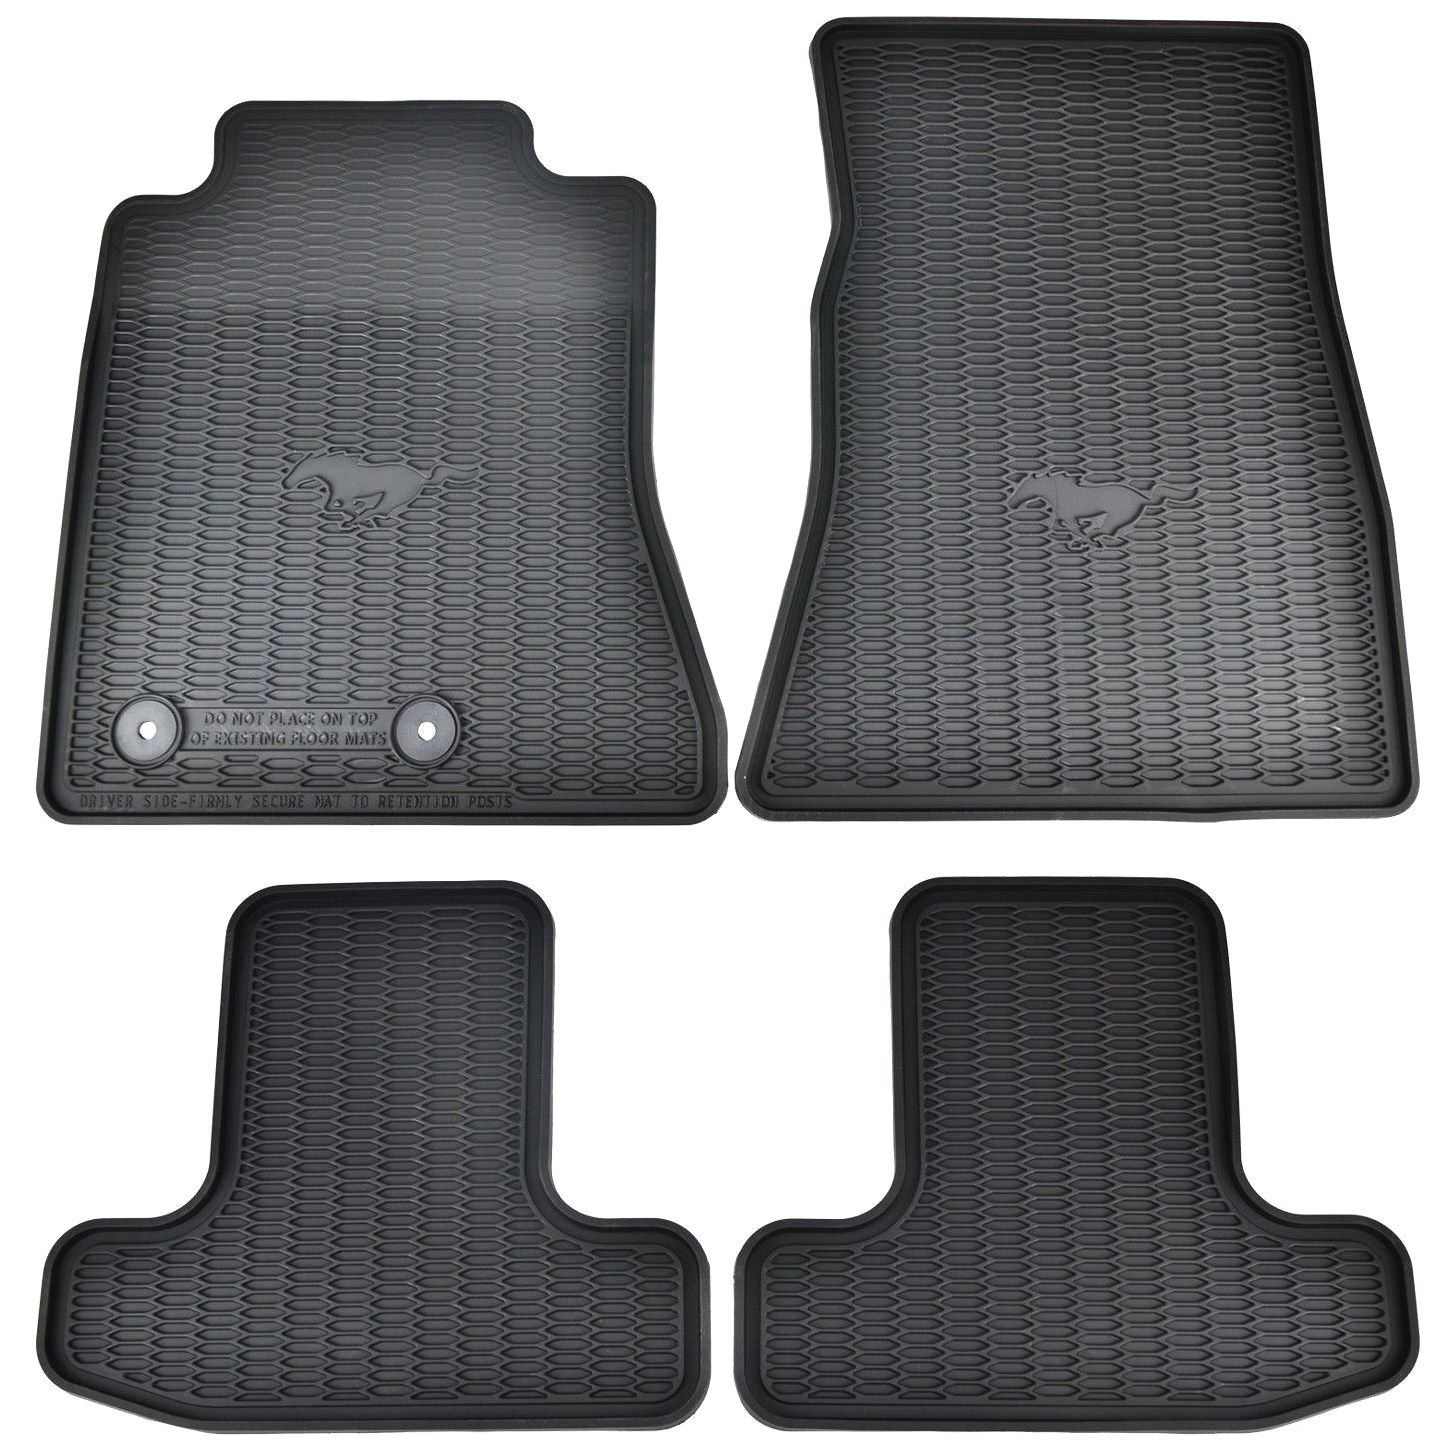 Ford Oem Factory Stock 2015 2016 Black Mustang Pony Horse All Weather Vinyl Floor Mats Front And Rear Read More At The Image Lin Black Mustang Mustang Ford